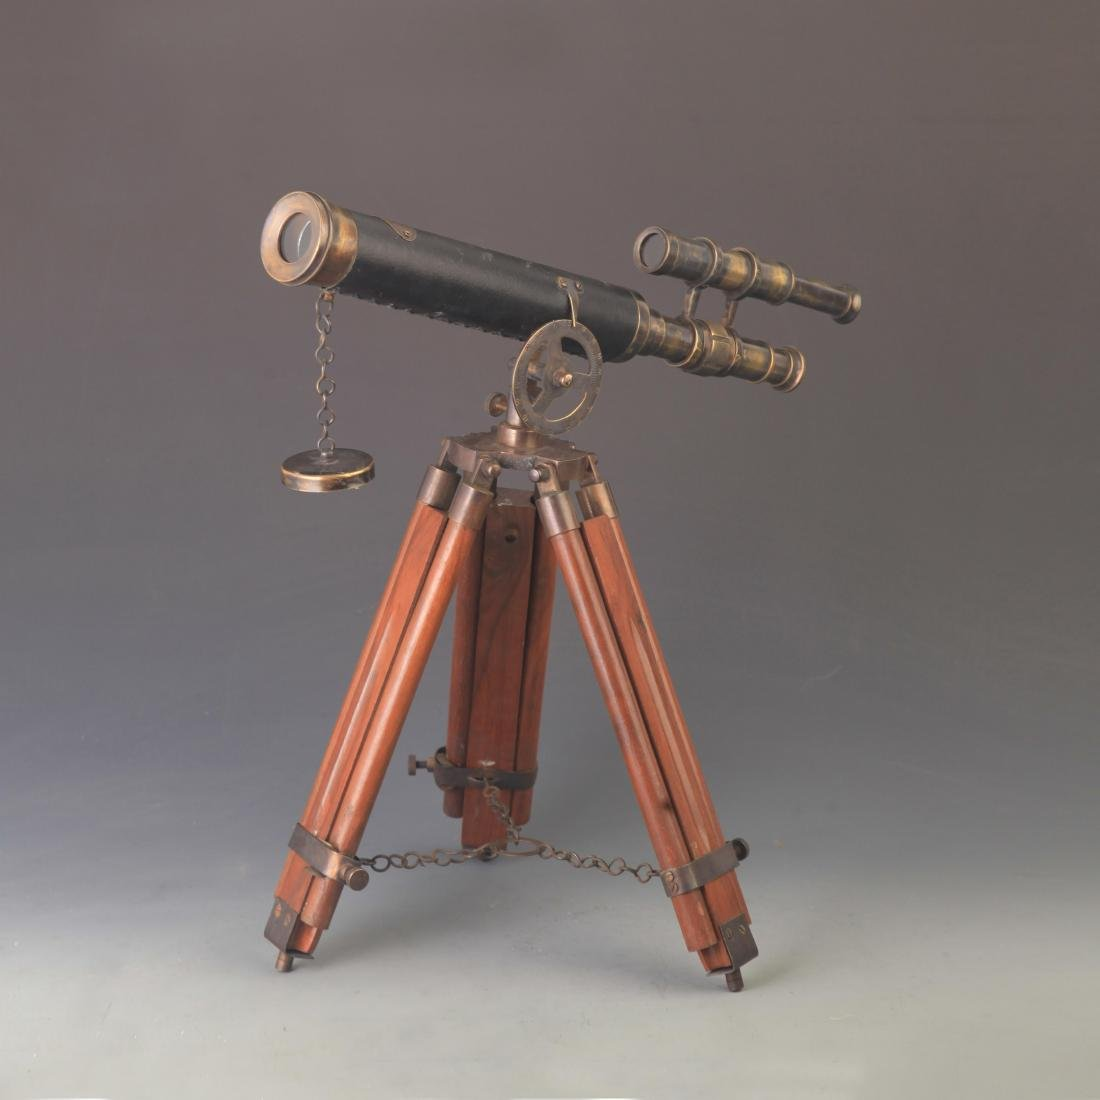 A FINE ENGLISH STYLE TELESCOPE WITH HUA LI MU WOOD BASE